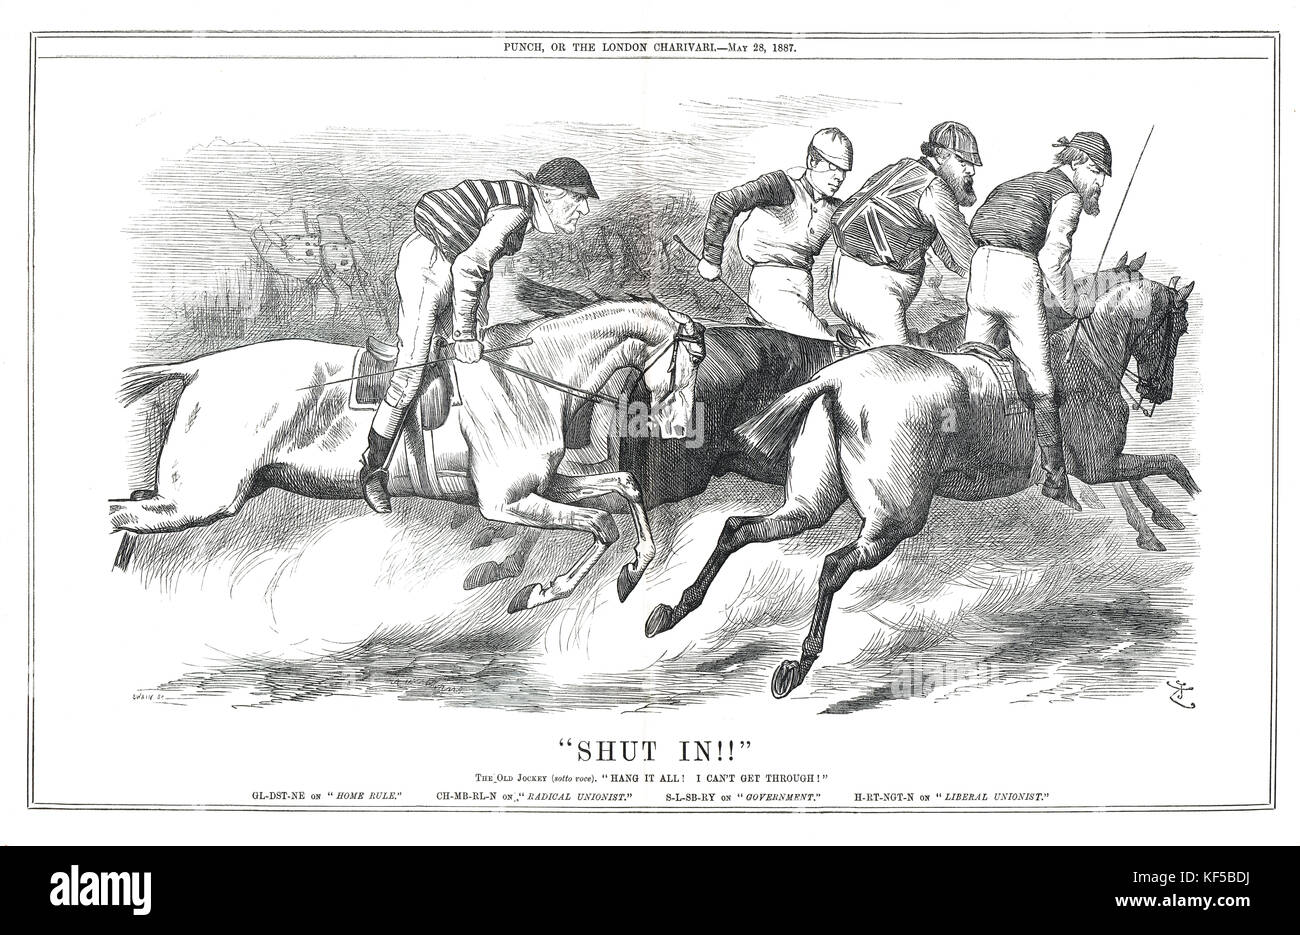 Gladstone on Home Rule, shut in. 1887 Punch cartoon Horse racing analogy showing politicians as jockeys referencing - Stock Image